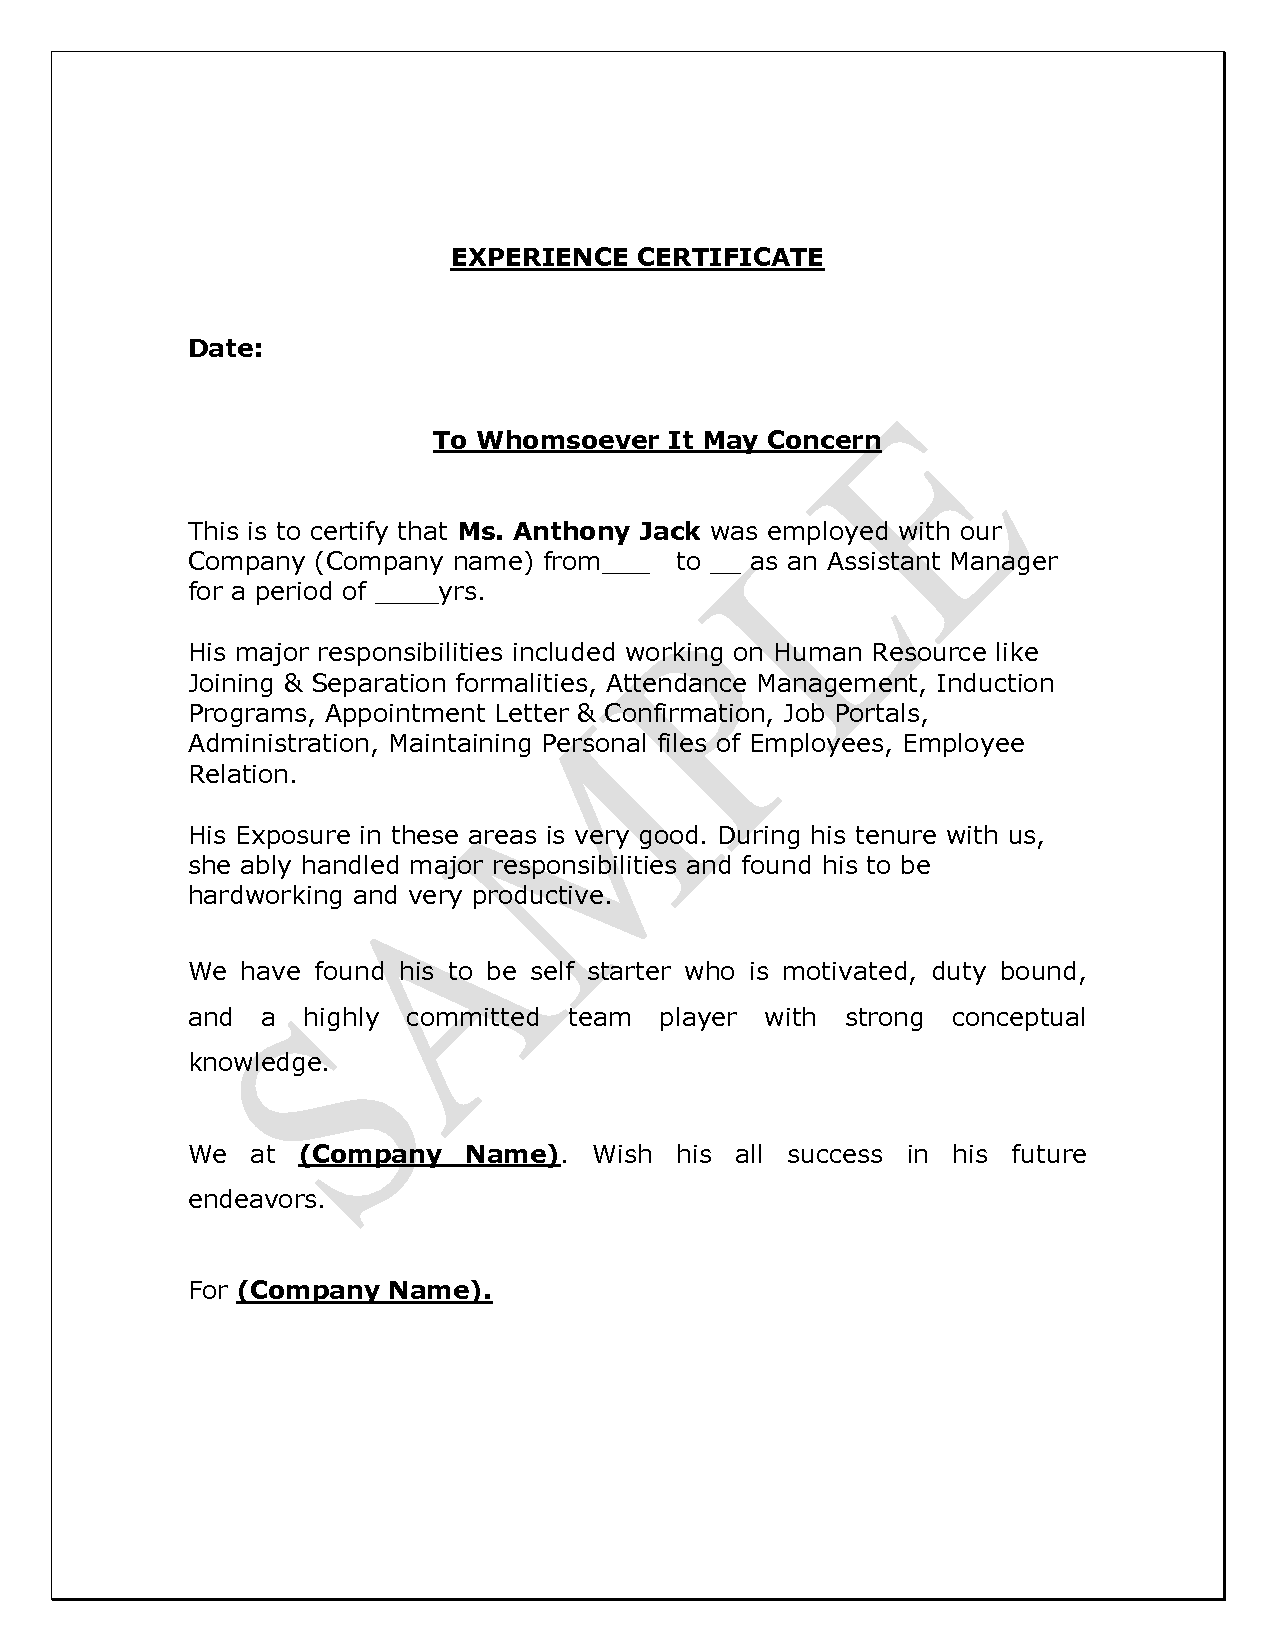 Teaching experience certificate format doc lawteched letter teaching experience certificate format doc lawteched letter paralegal resume objective yadclub Image collections